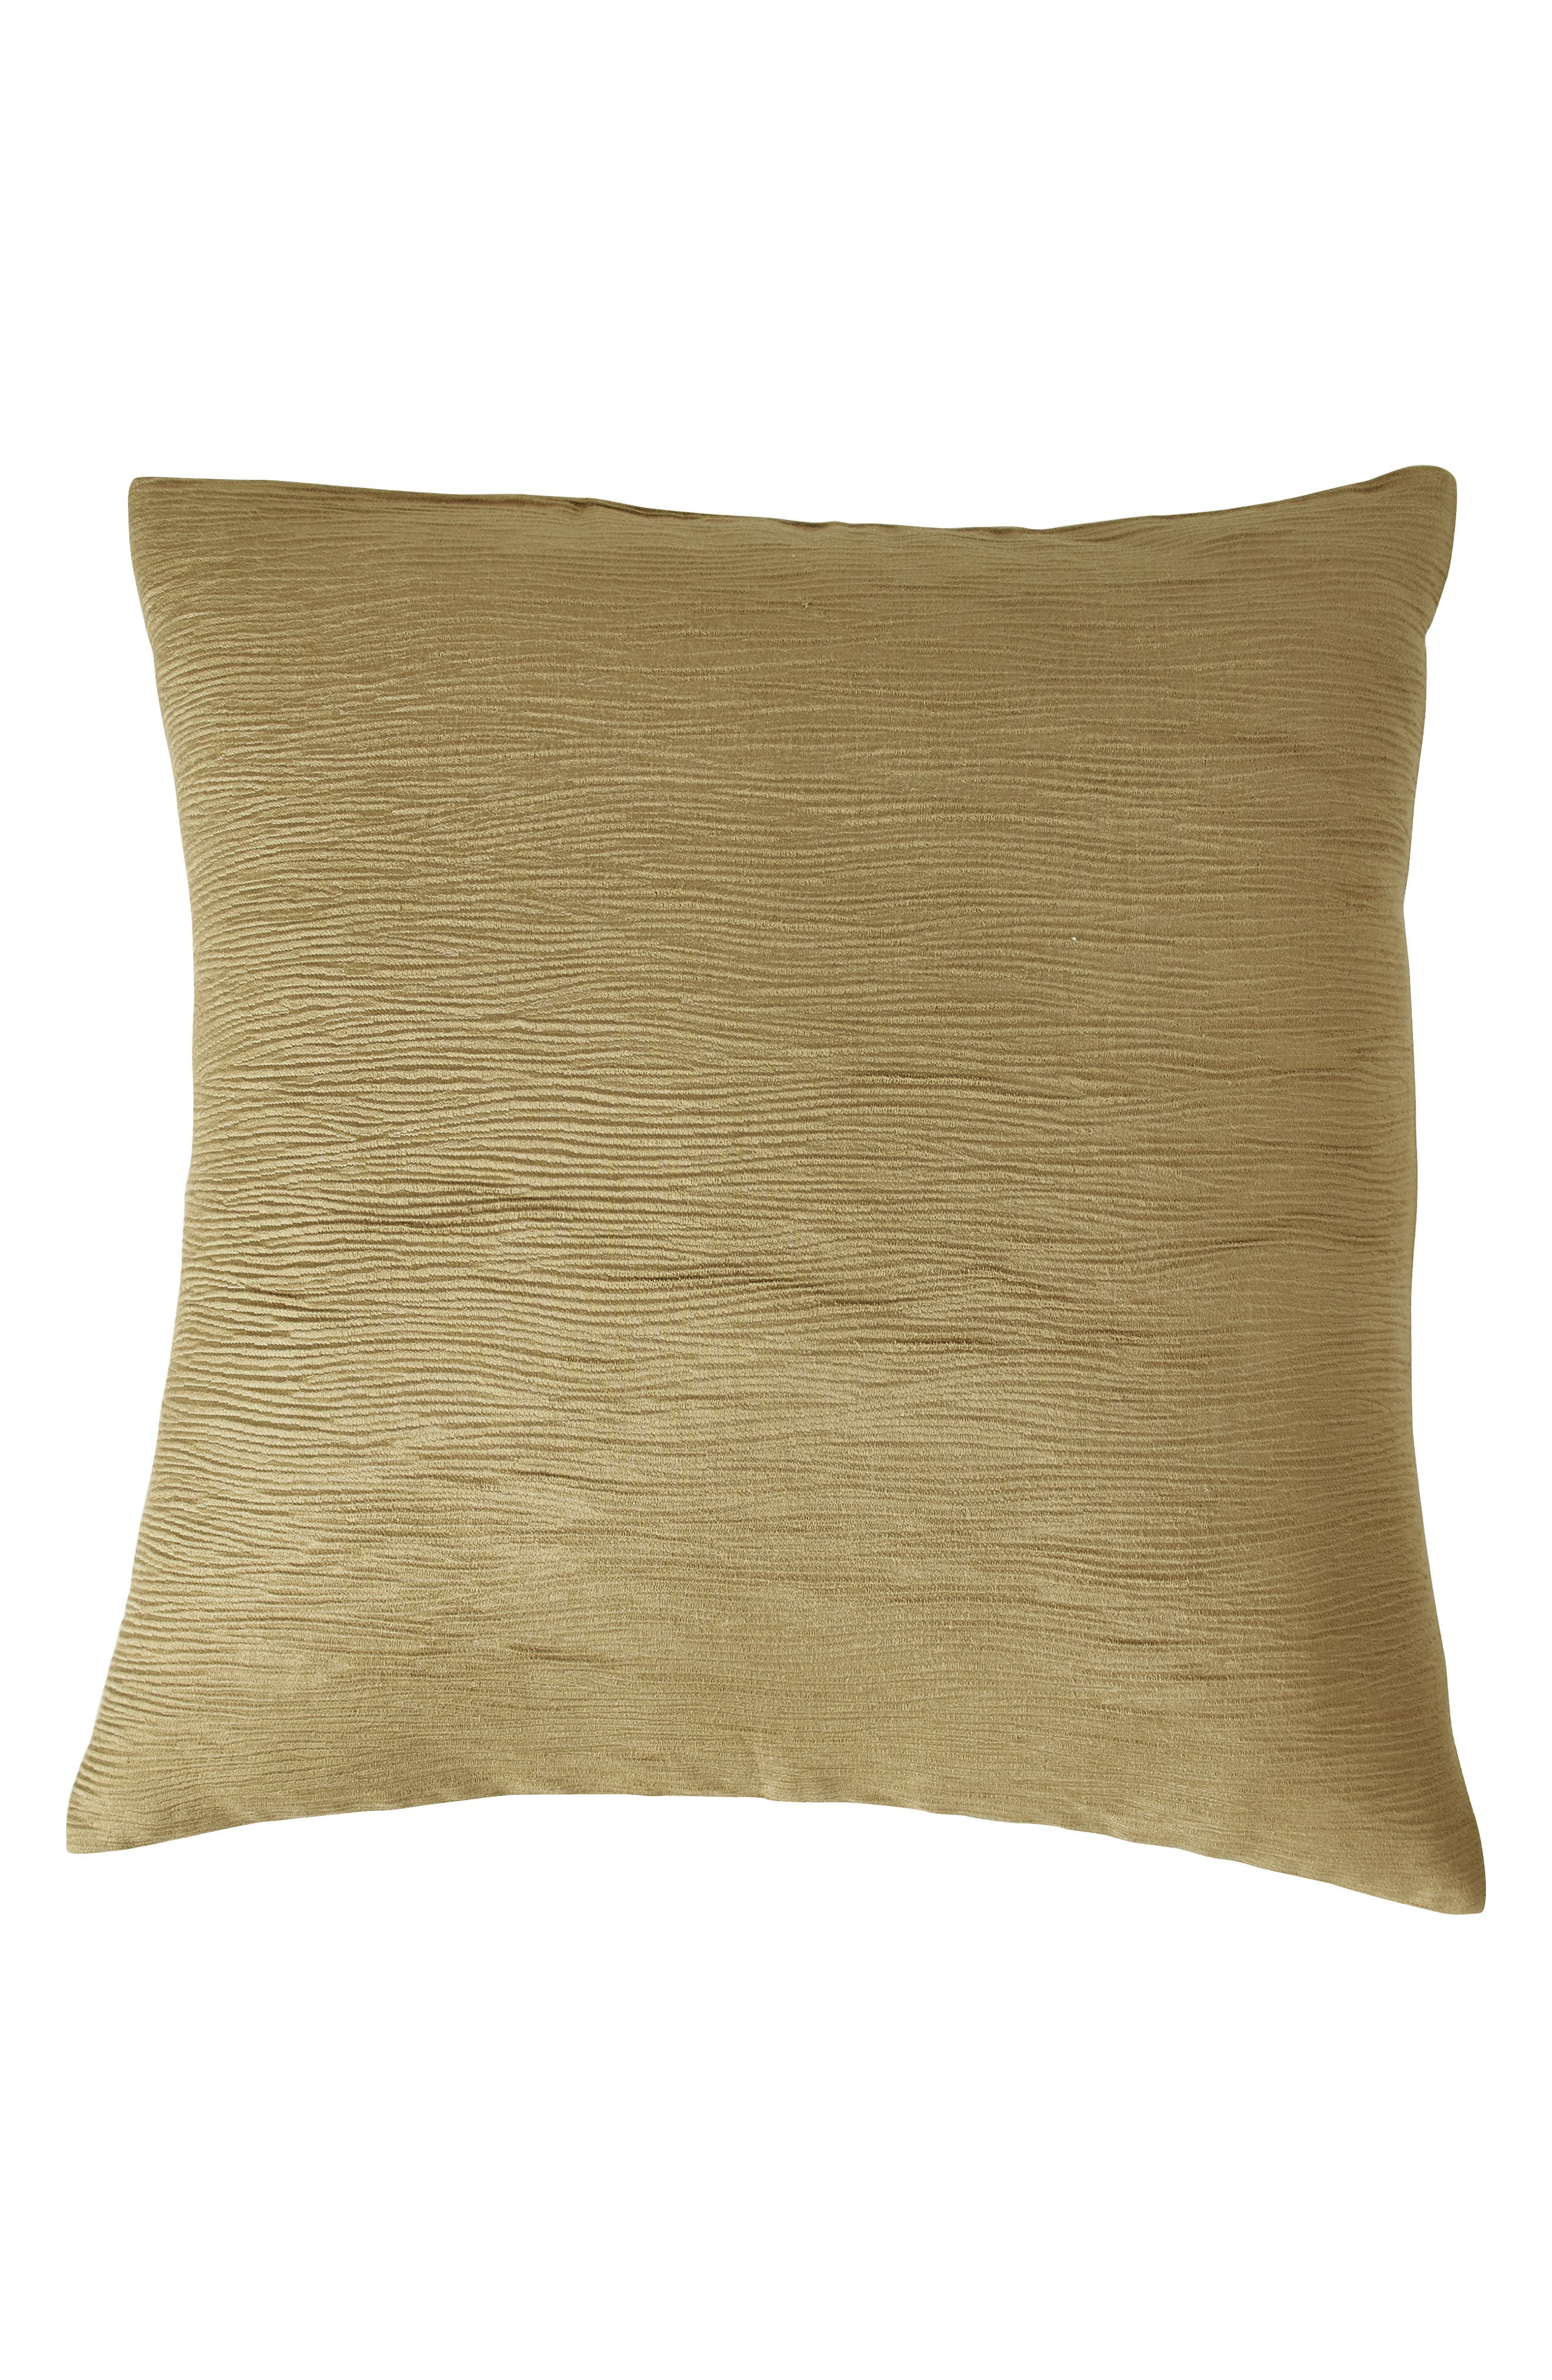 DONNA KARAN NEW YORK Gilded Euro Sham, Main, color, GOLD